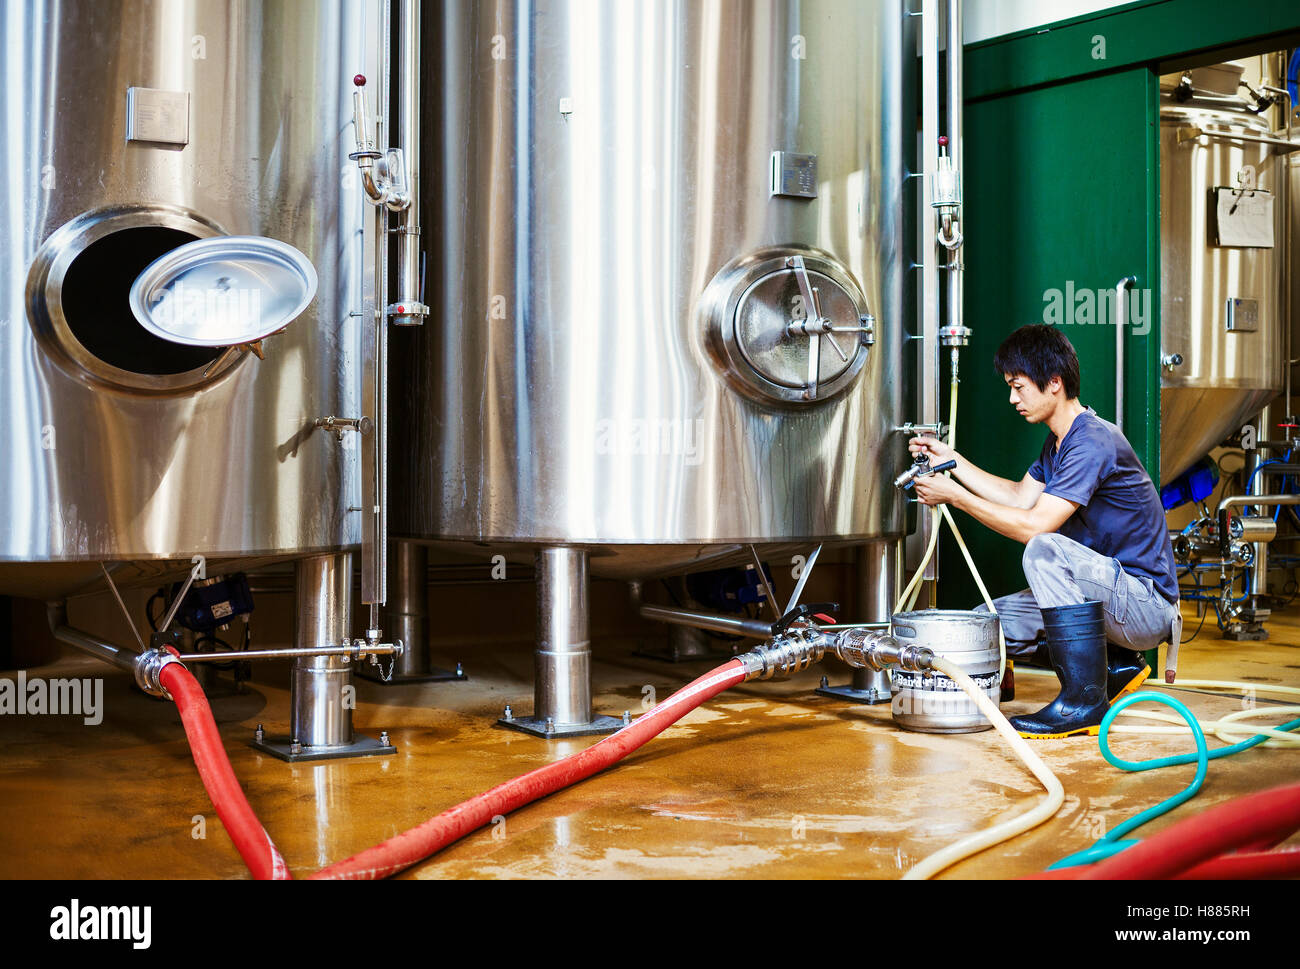 Man working in a brewery, kneeling beside a metal beer tank. - Stock Image